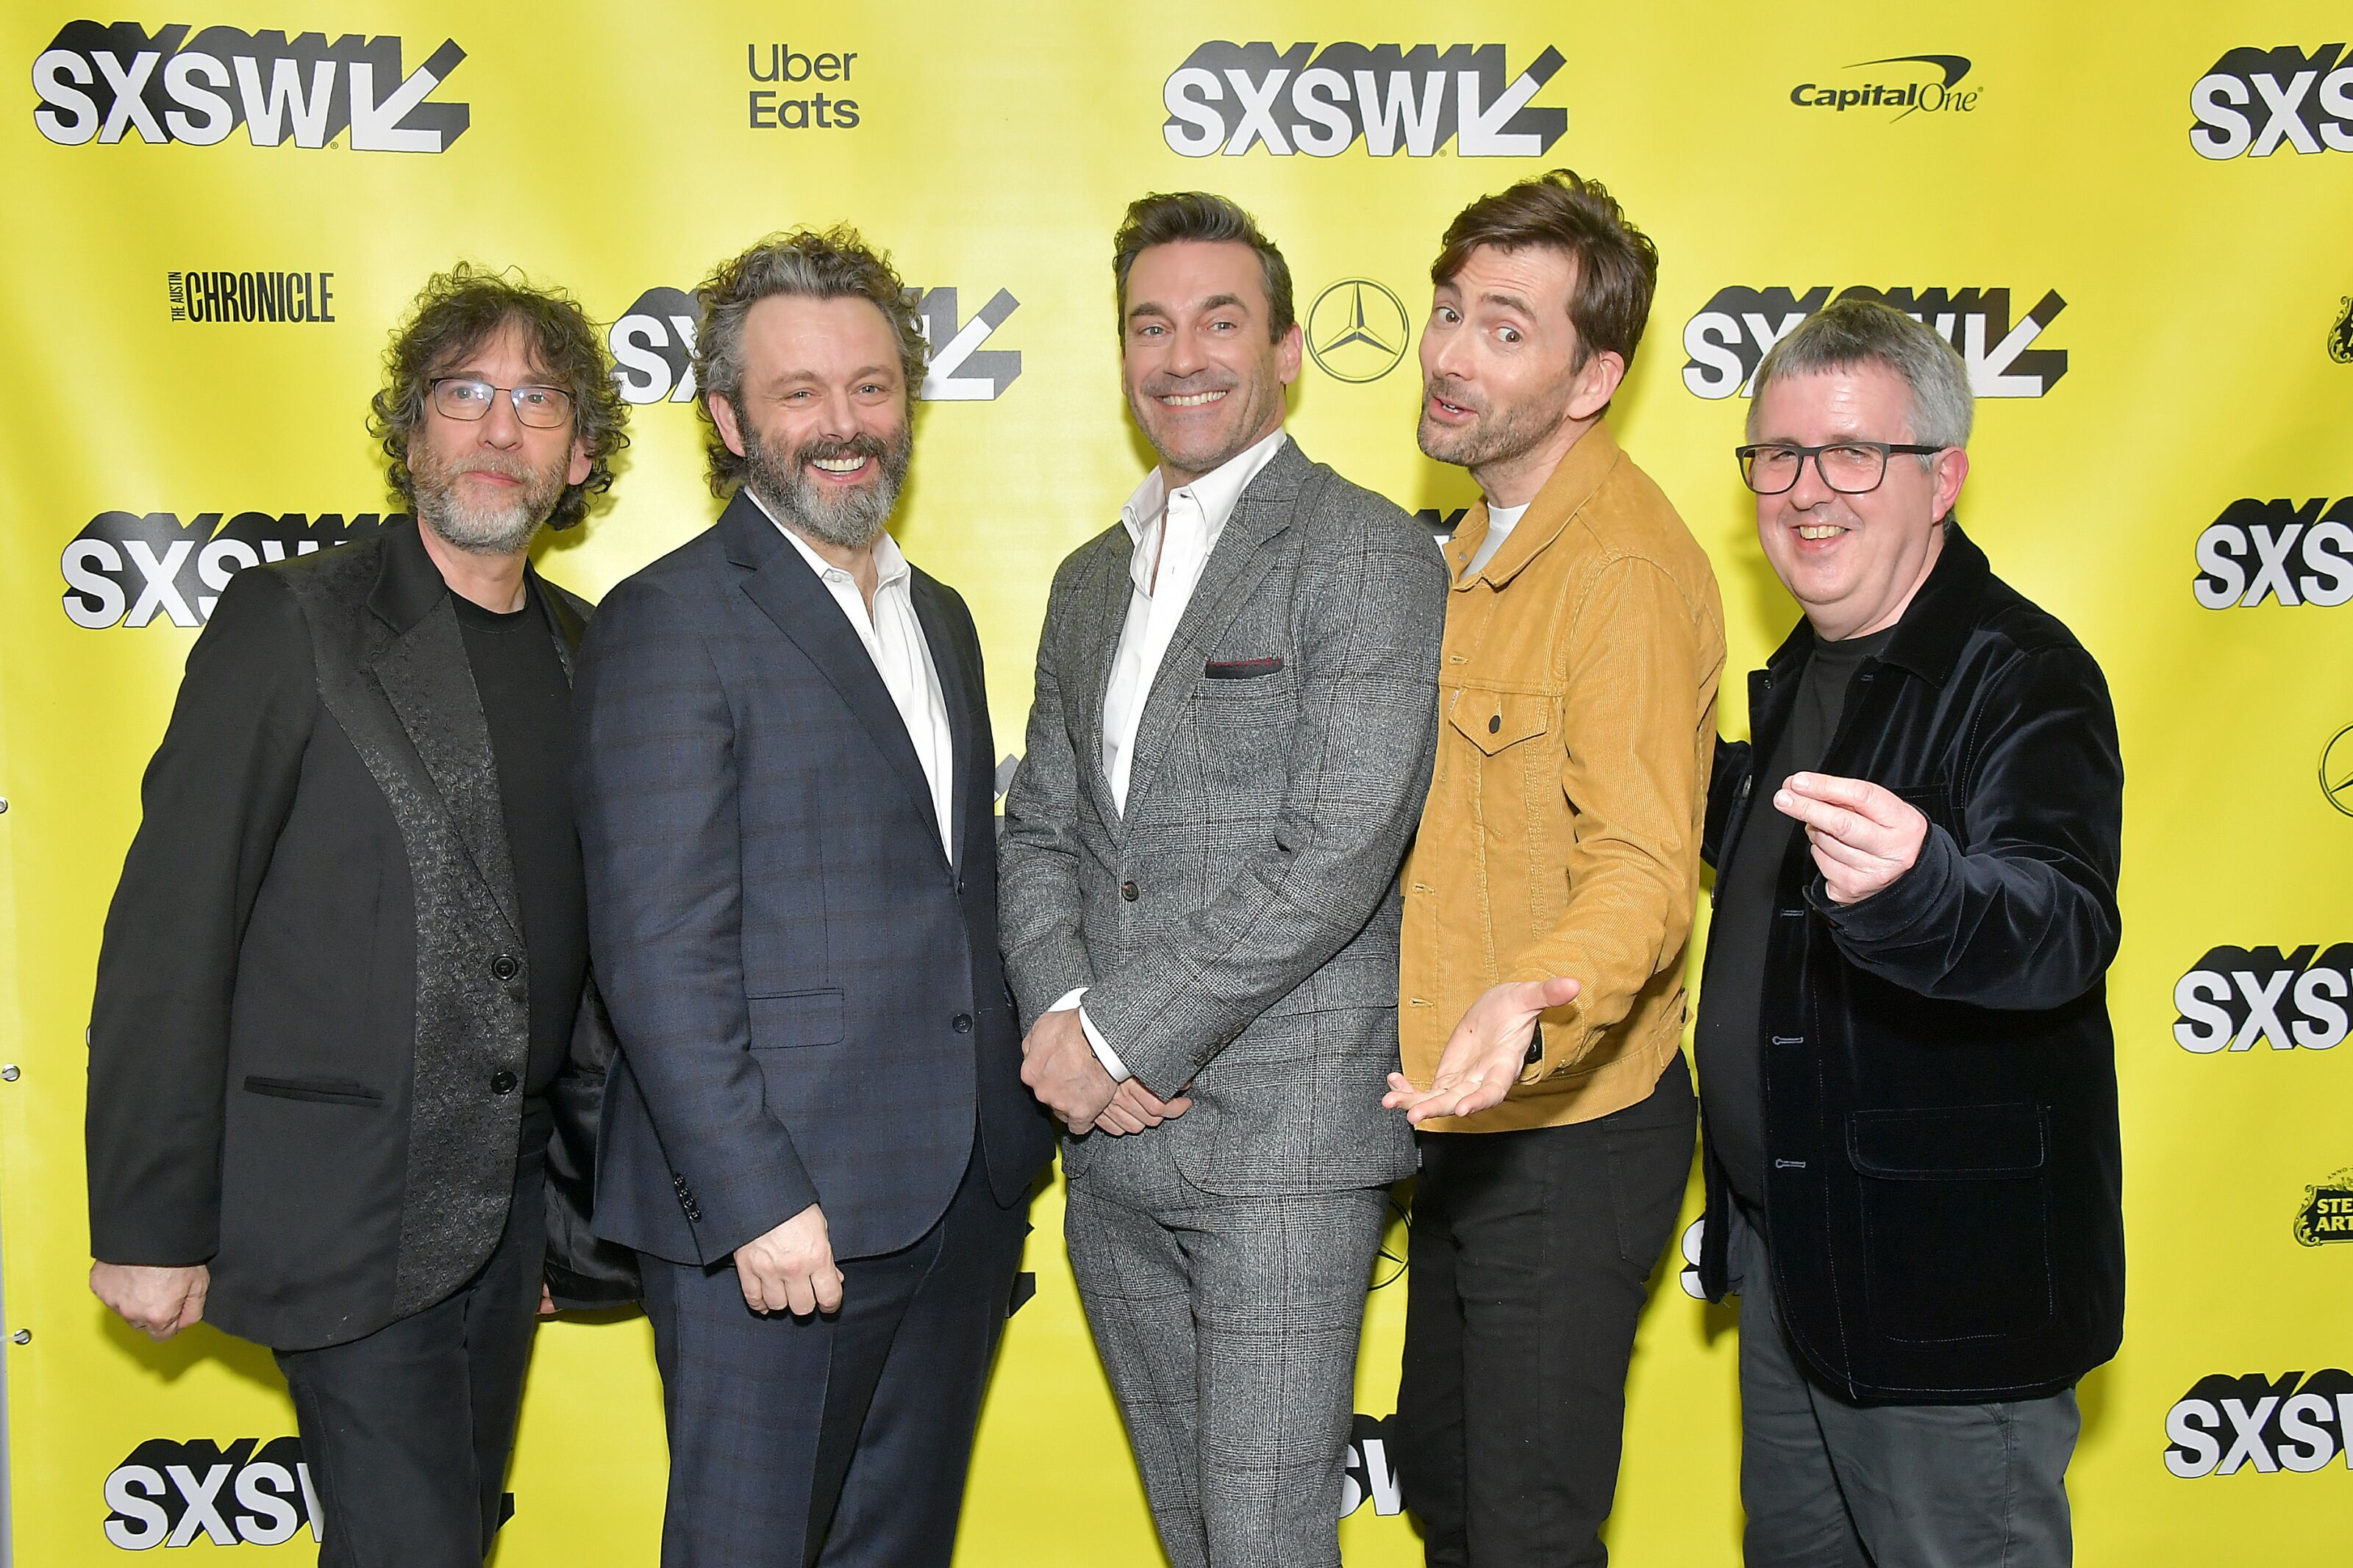 Good Omens panel at South by Southwest: Everything you need to know